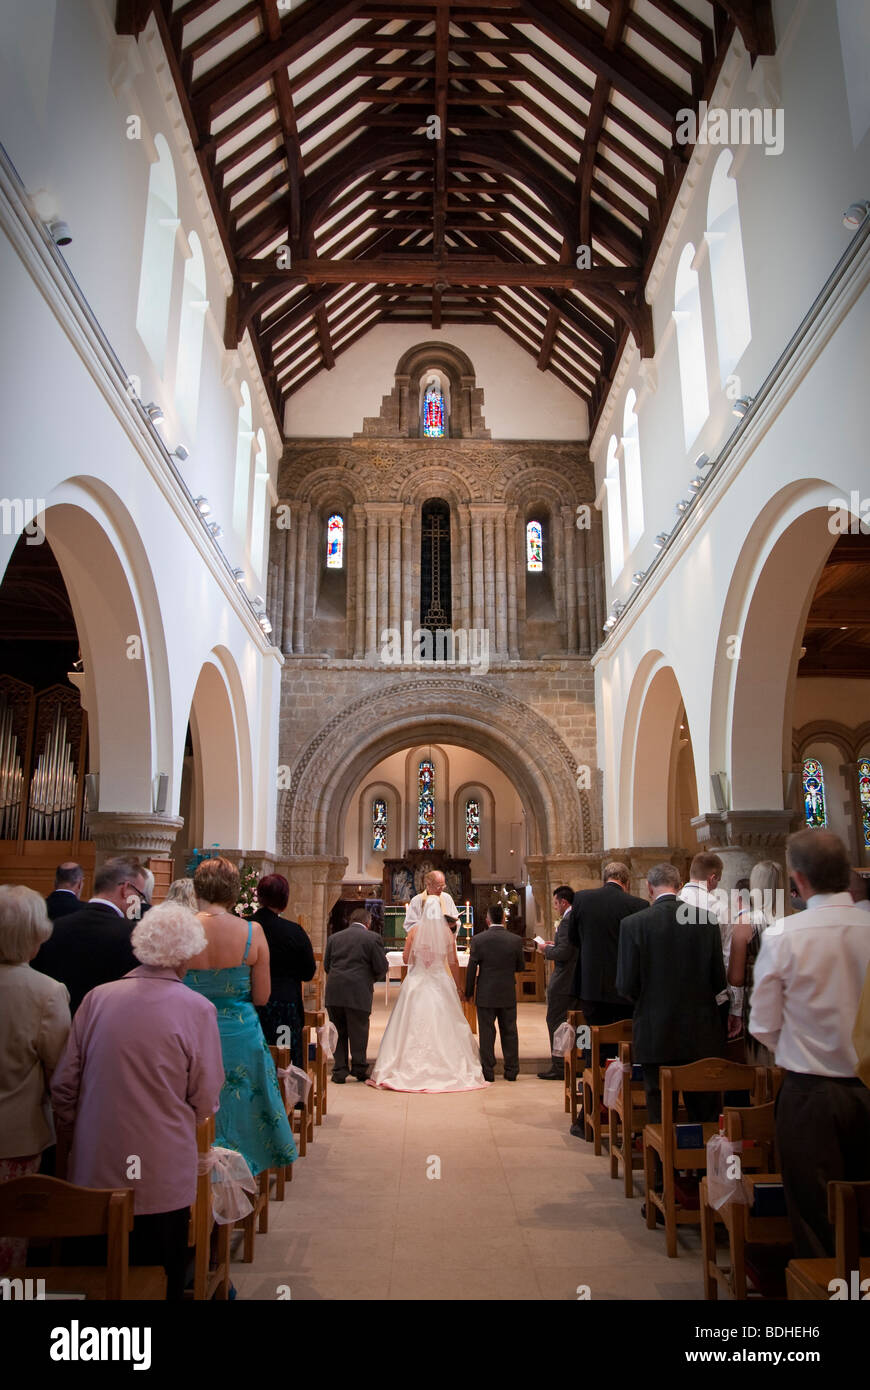 Wedding Ceremony Indide Church Of England Church Looking Up Aisle